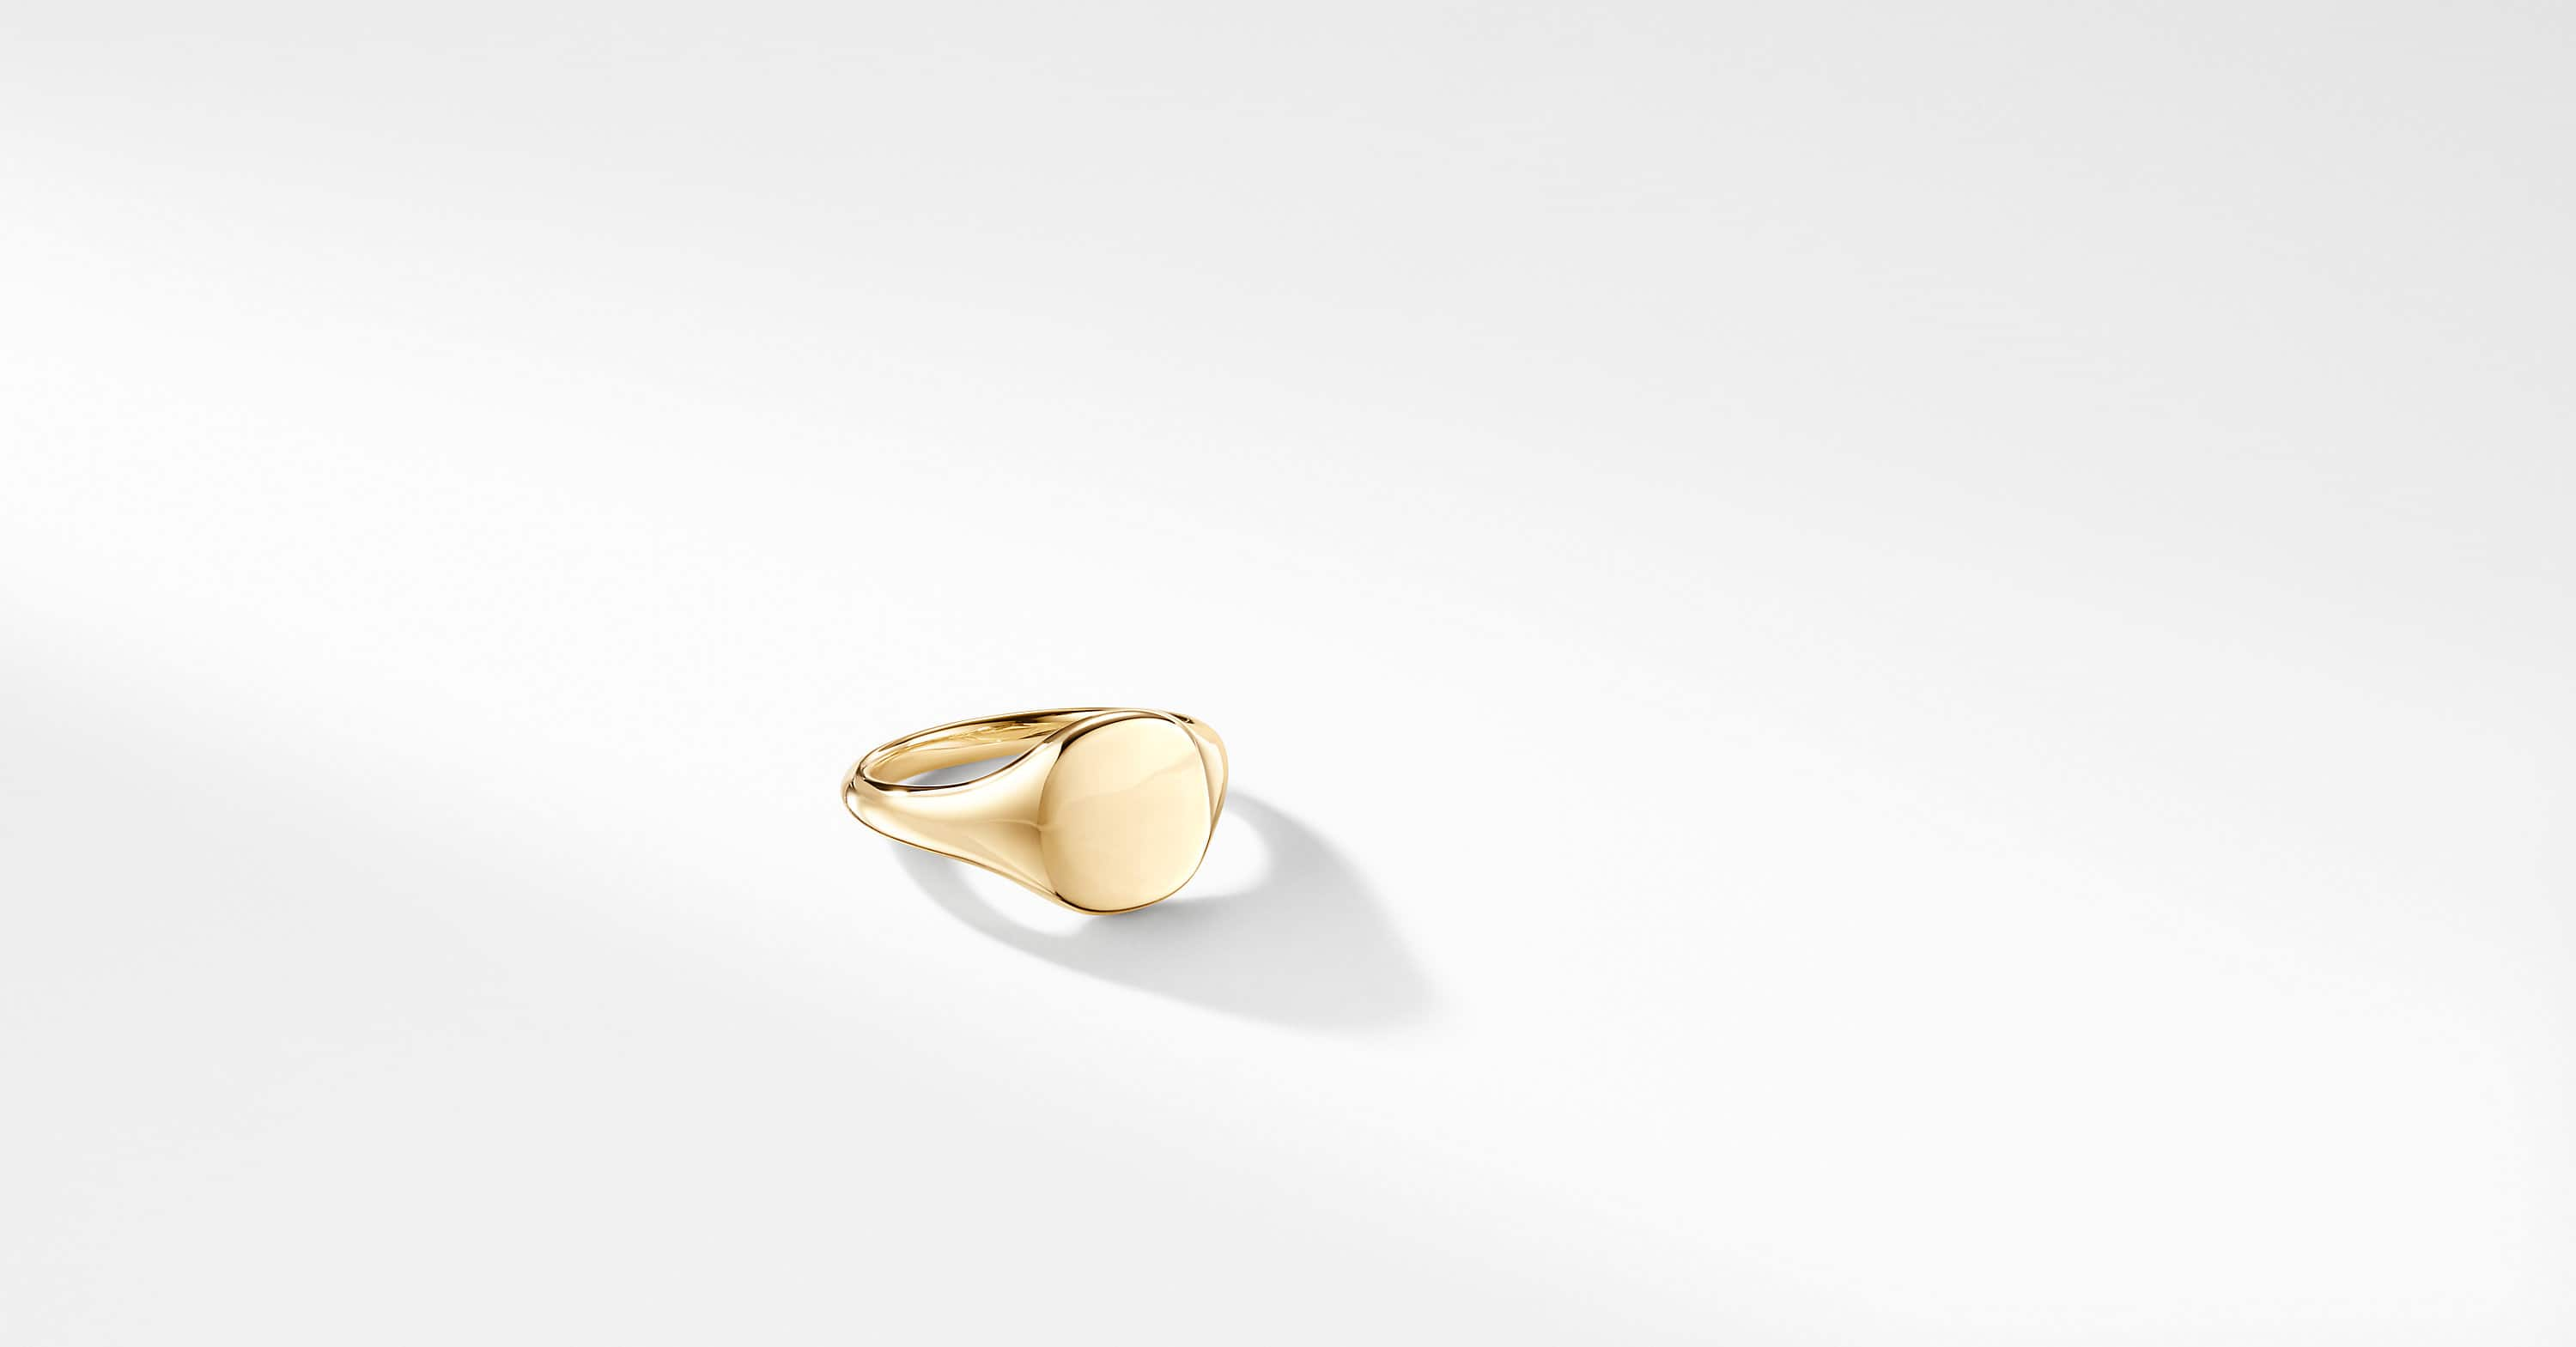 DY Signature Mini Pinky Ring in 18K Gold